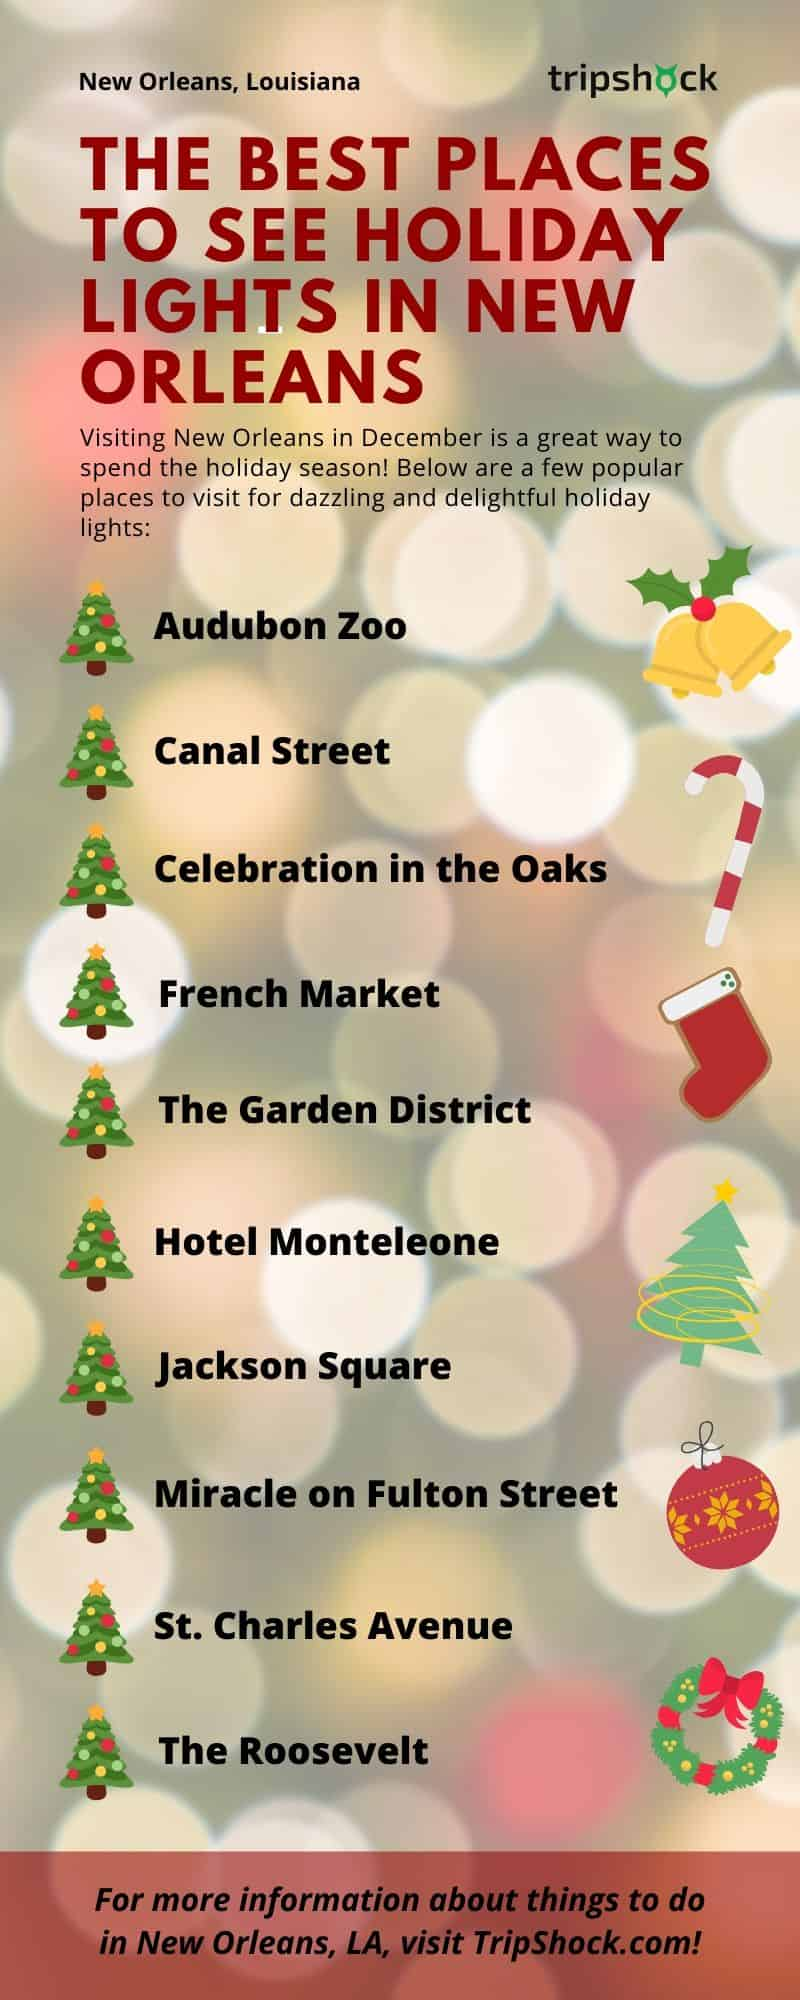 best places to see holiday lights in new orleans